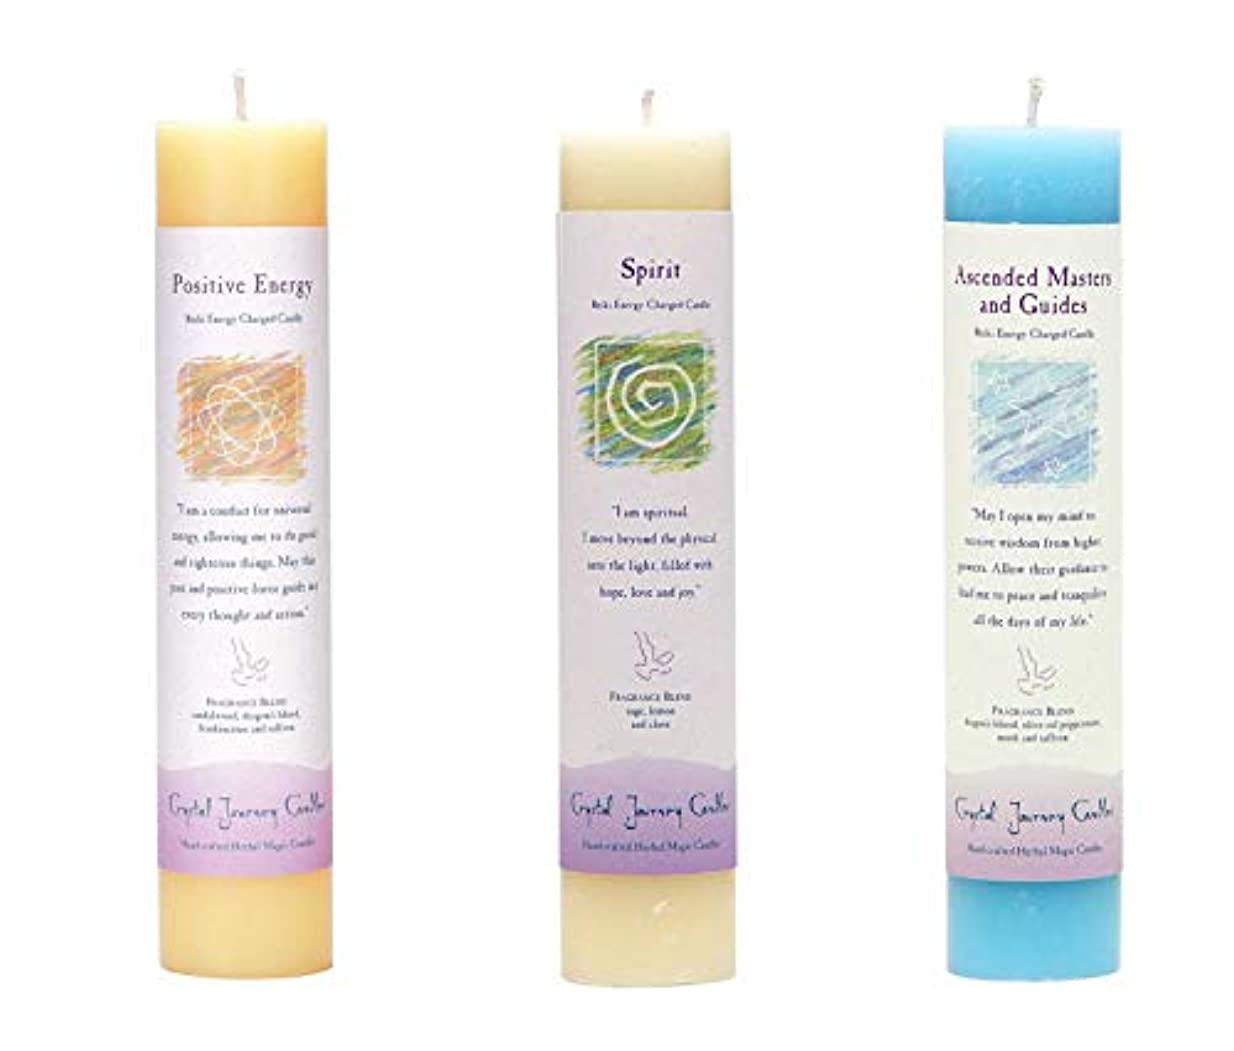 サルベージジャンプするクラック(Ascended Masters and Guides, Spirit, Positive Energy) - Crystal Journey Reiki Charged Herbal Magic Pillar Candle...